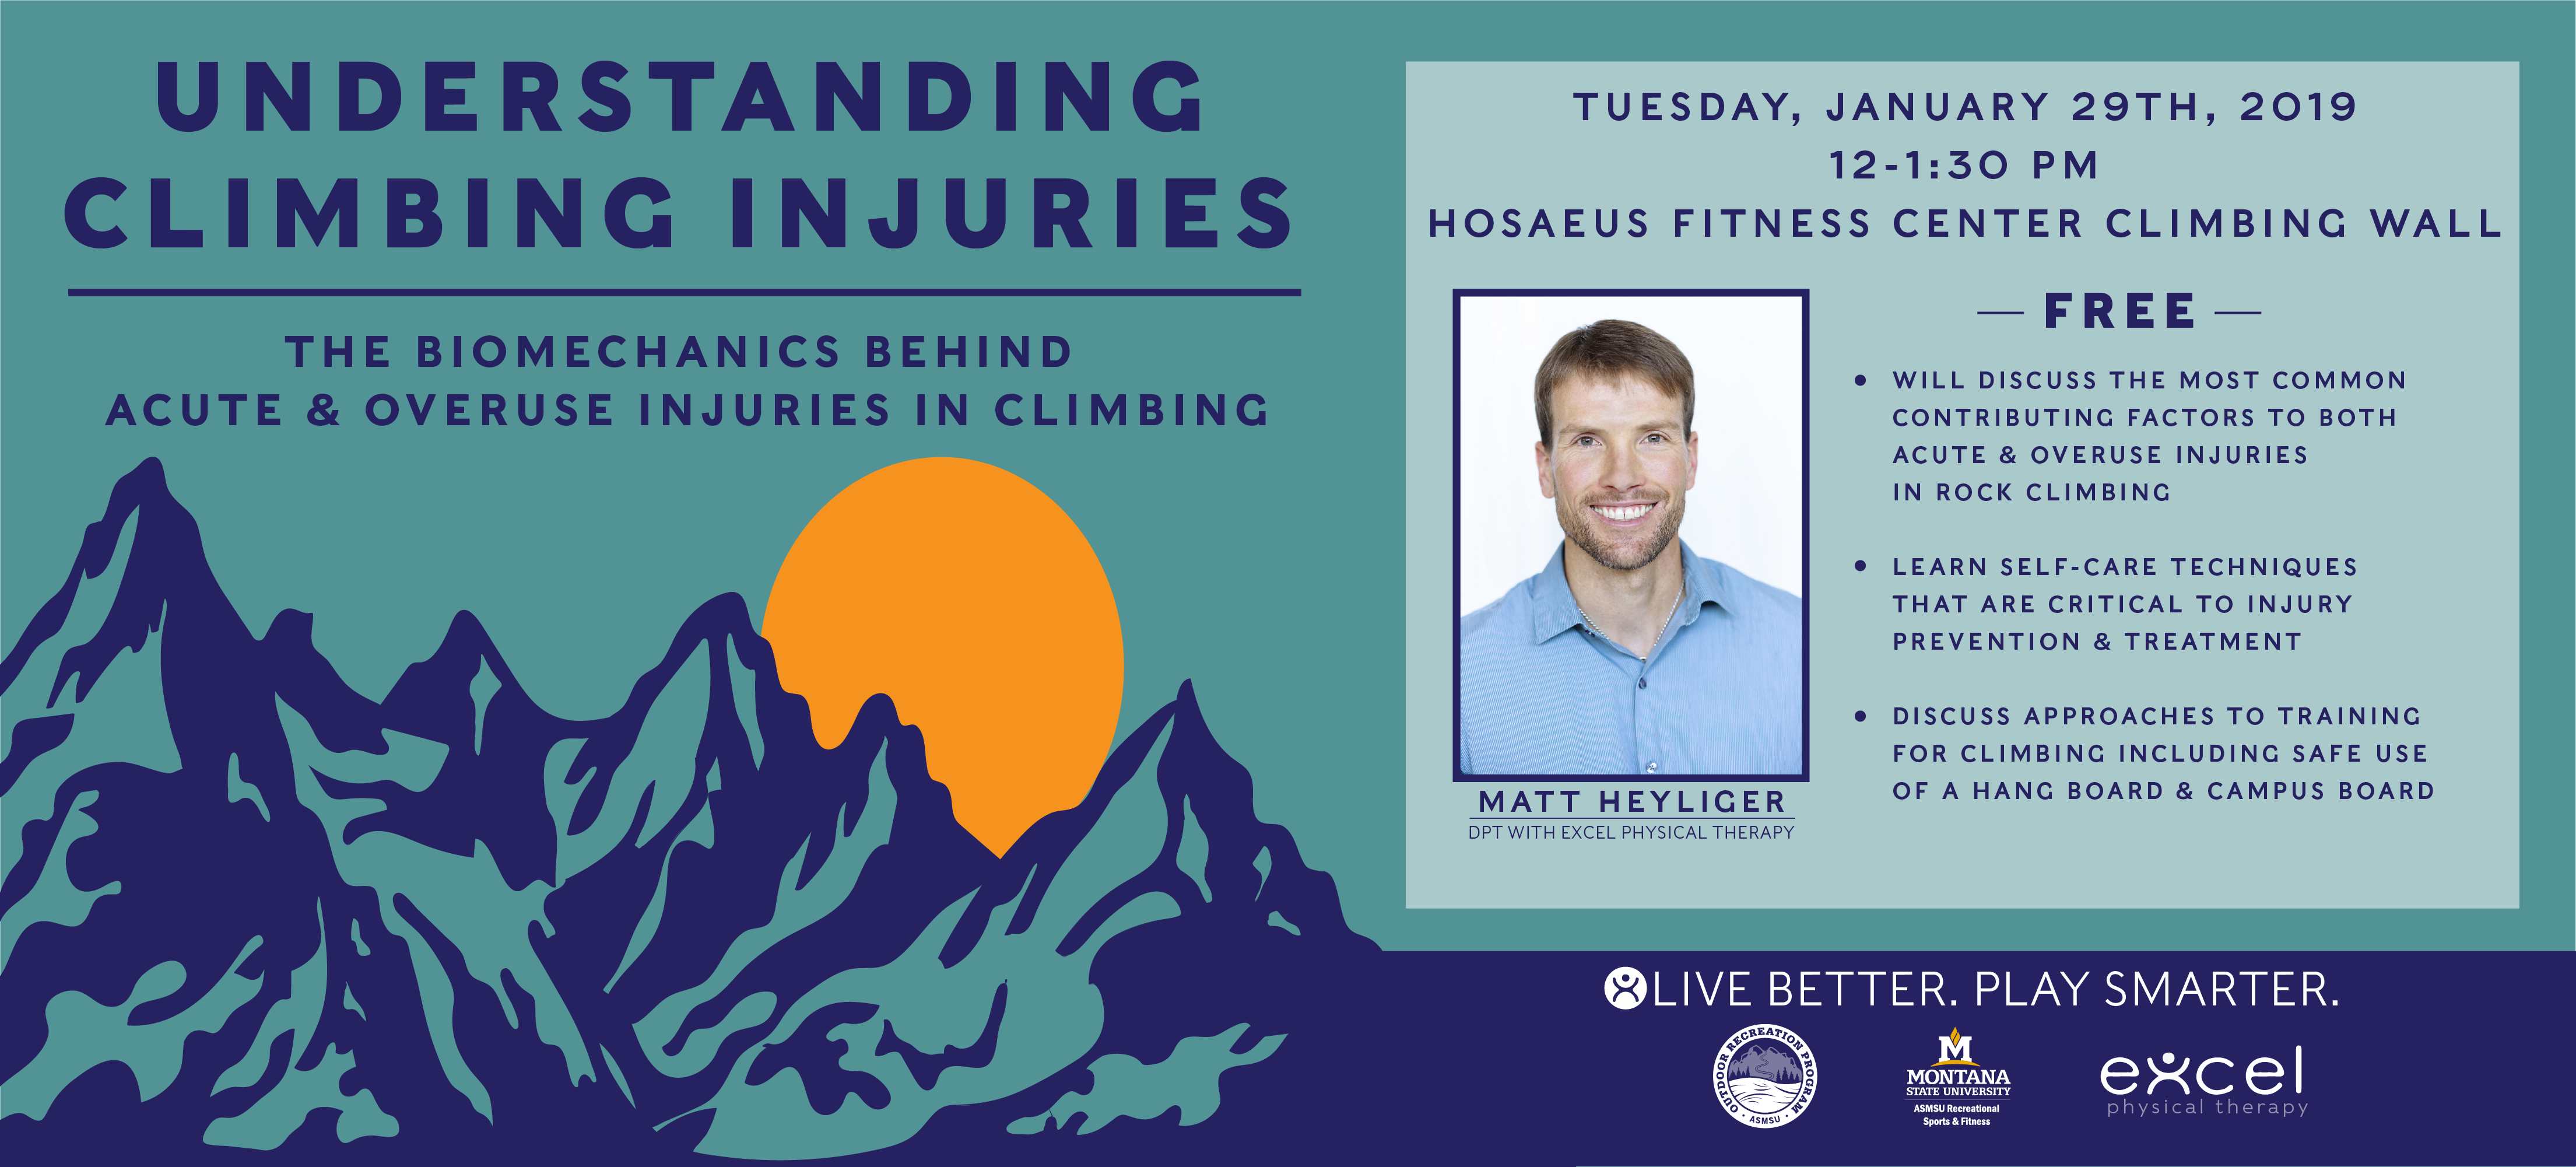 Learn the most common factors in climbing injuries along with prevention and treatment from Matt Heyliger, DPT with Excel Physical Therapy.  Tuesday, Jan. 29, 2019 at the Hosaeus Fitness Center Climbing Wall.